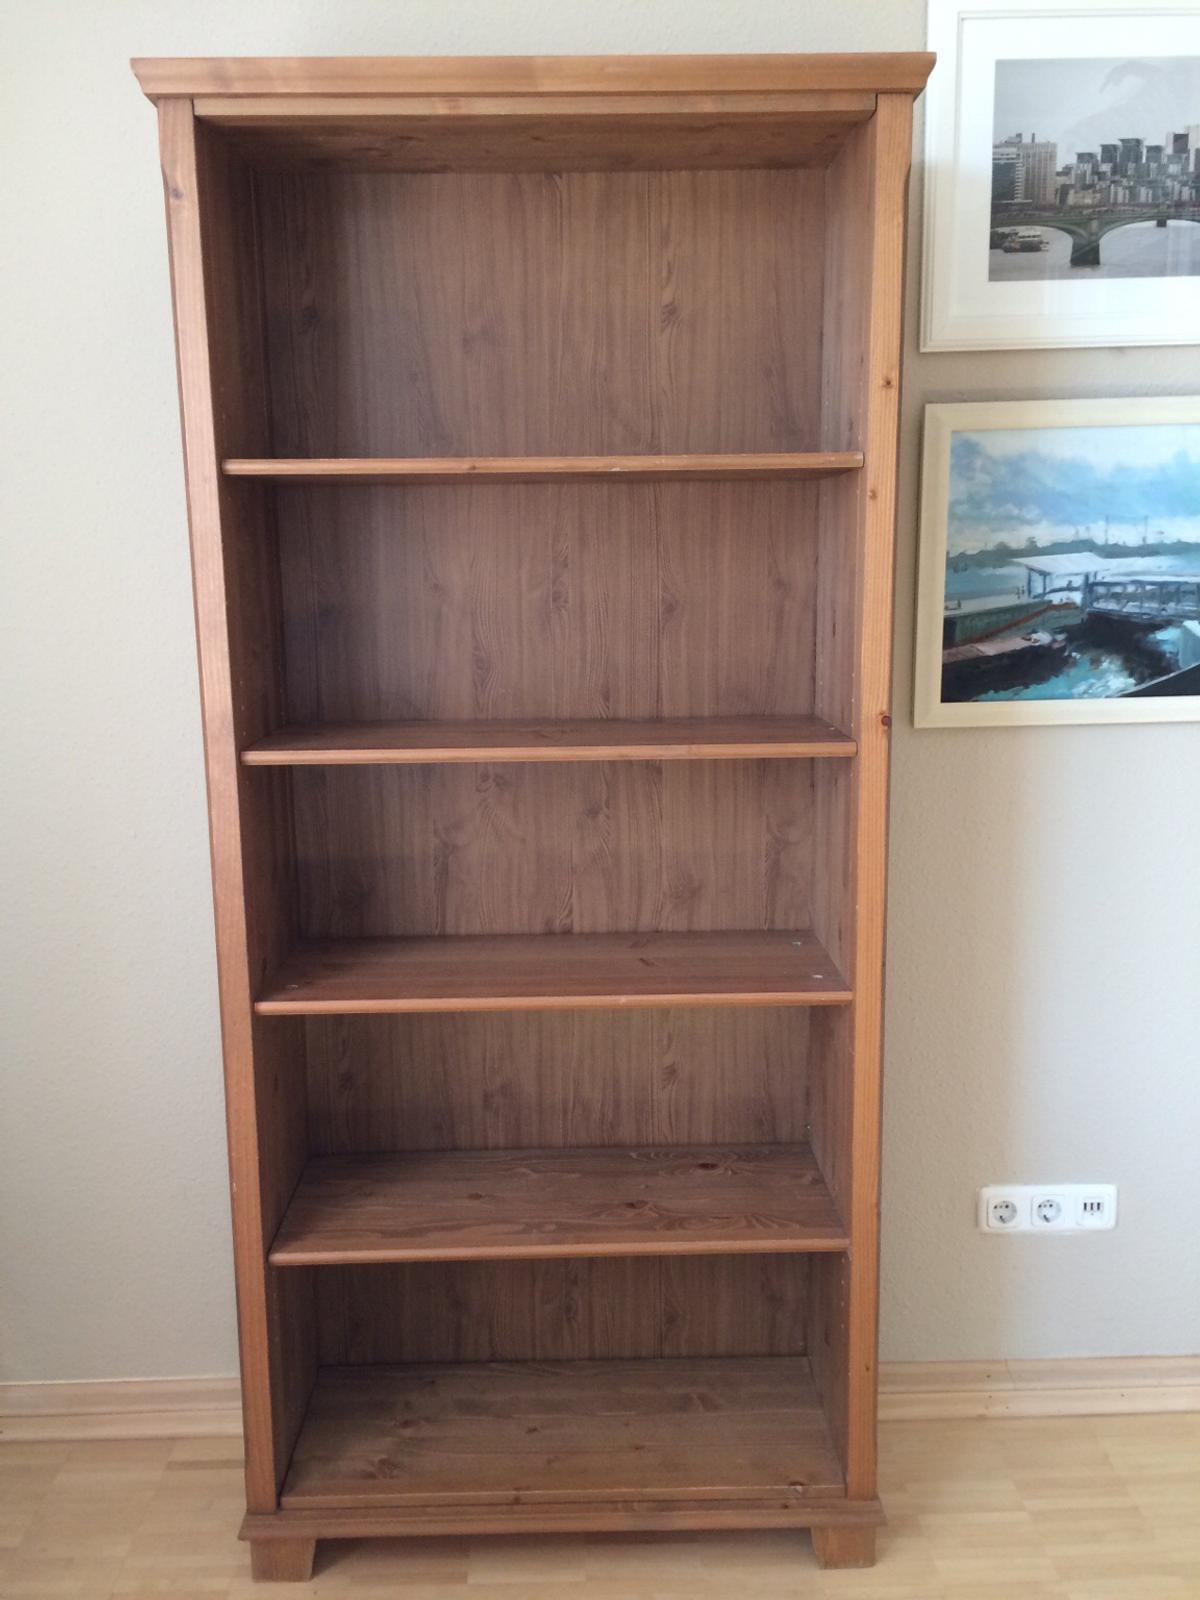 ikea regal holz braun